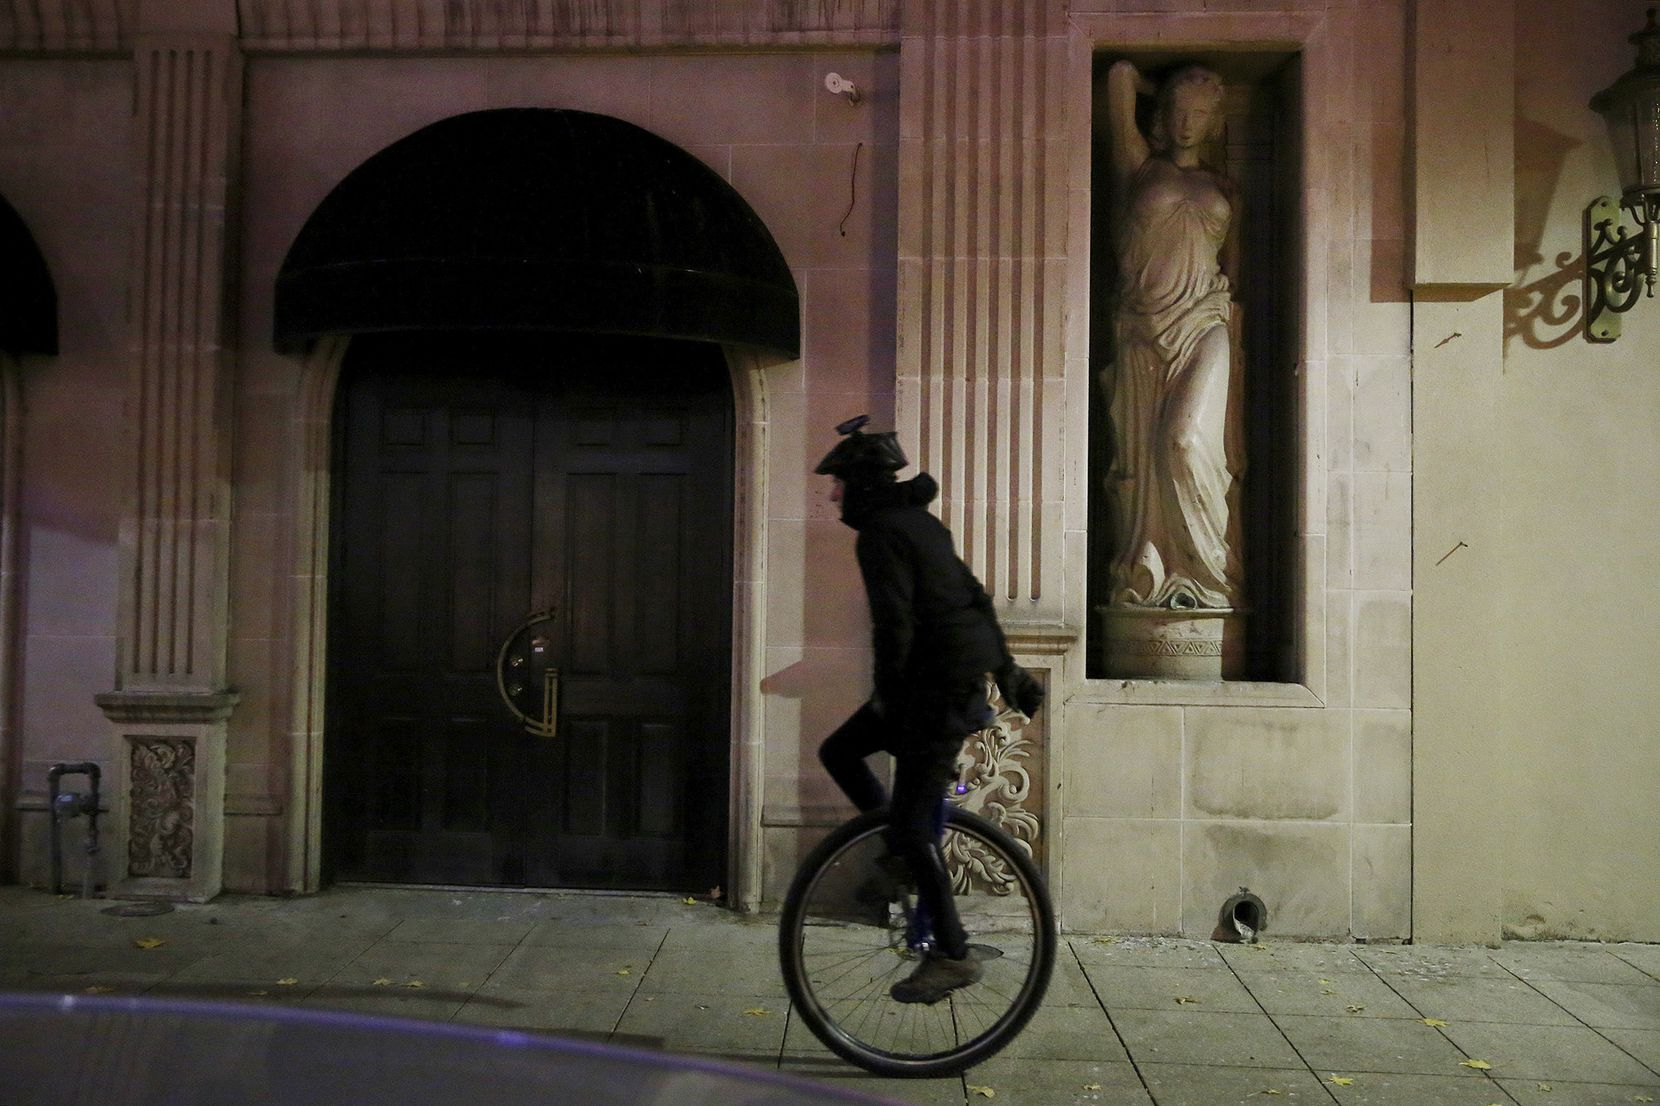 A unicyclist rides near 1400 Main Street in downtown Dallas on Sunday night.